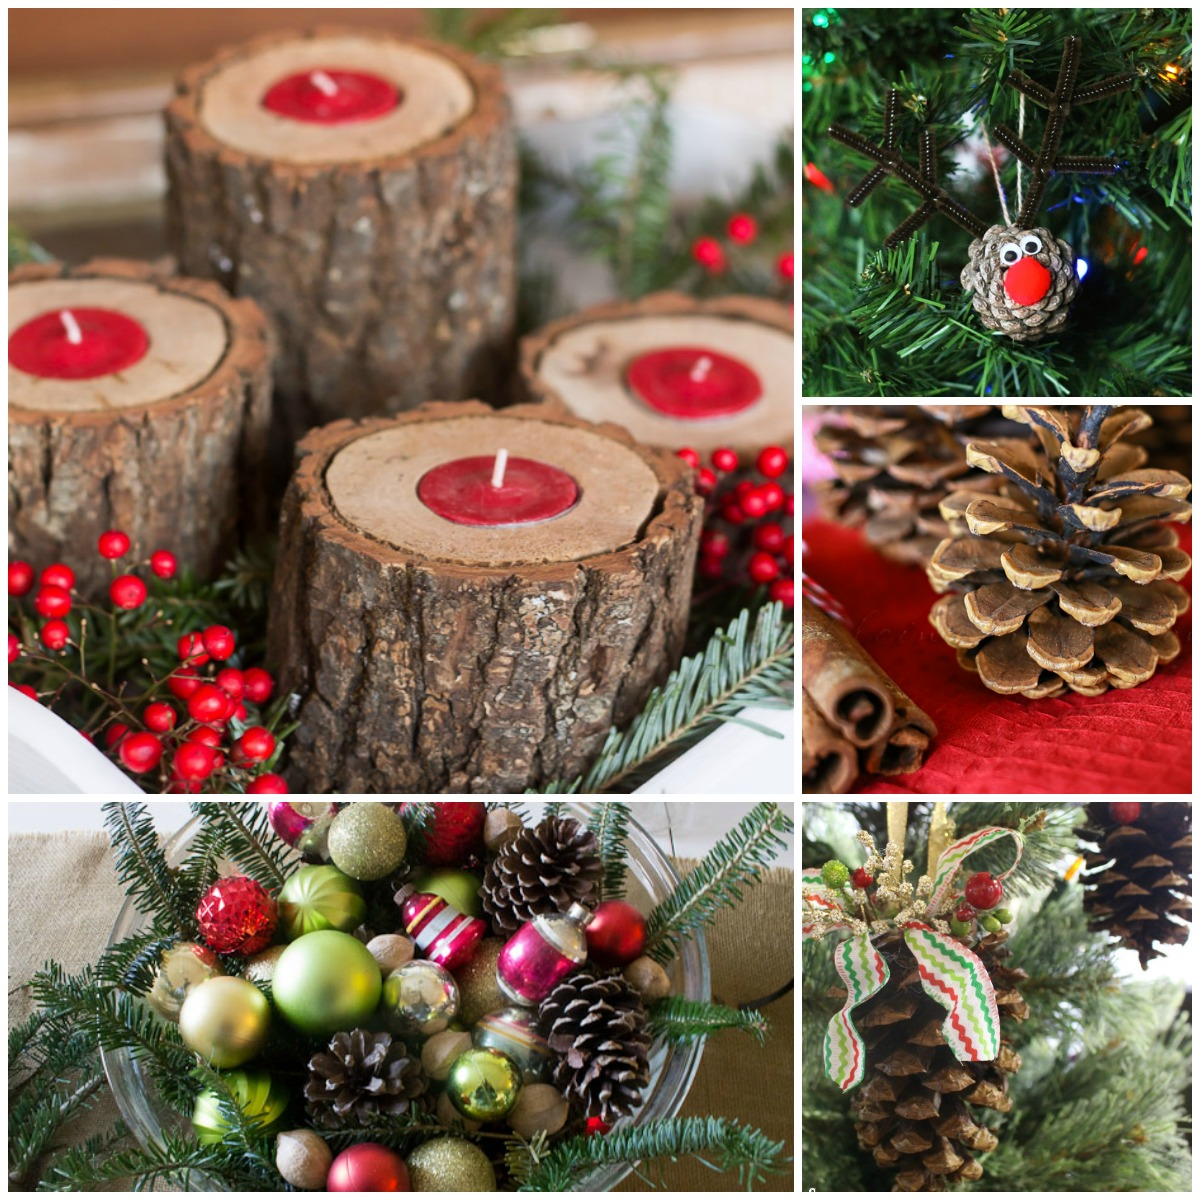 Christmas Diy Decorating Ideas: 9 DIY Home-Made Christmas Ornaments To Decorate Your Tree